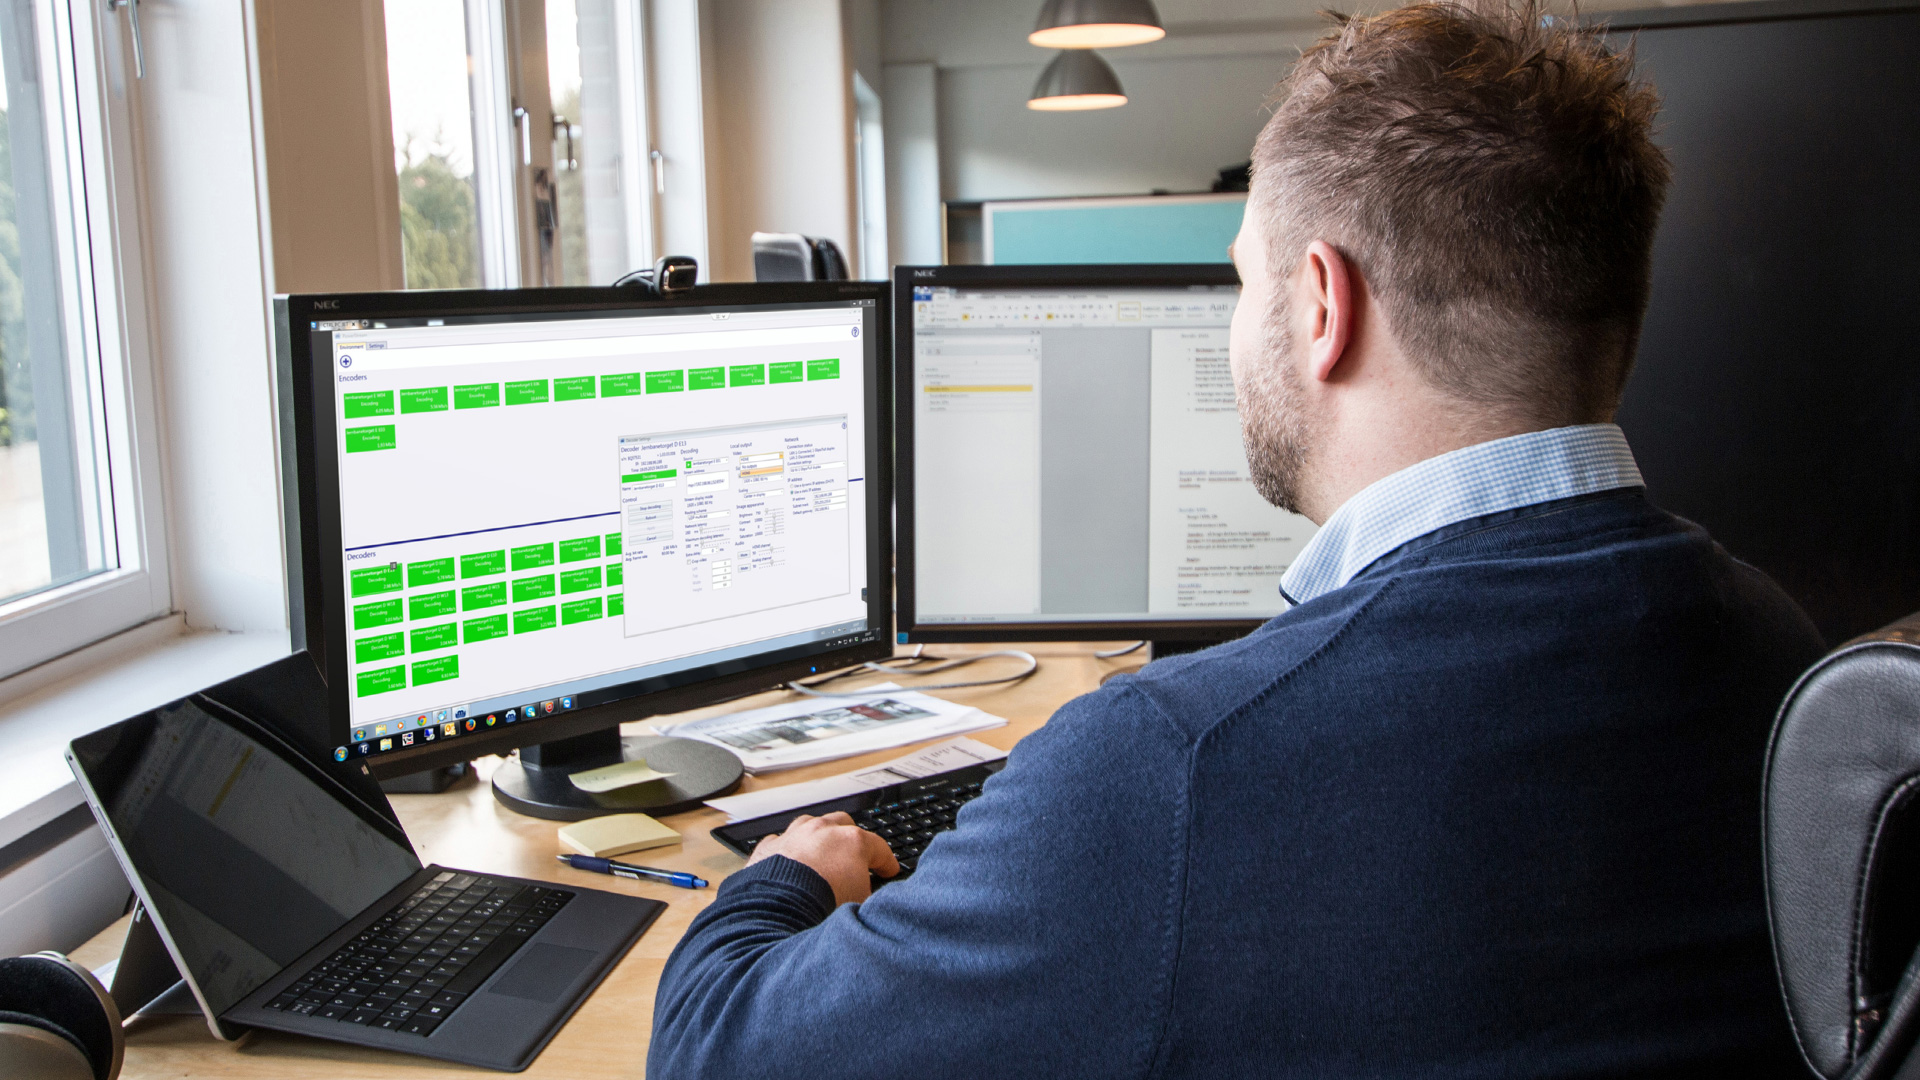 The operations center, located at Clear Channel Norway's own Oslo office, oversees all operations across the entire network with Maevex PowerStream.